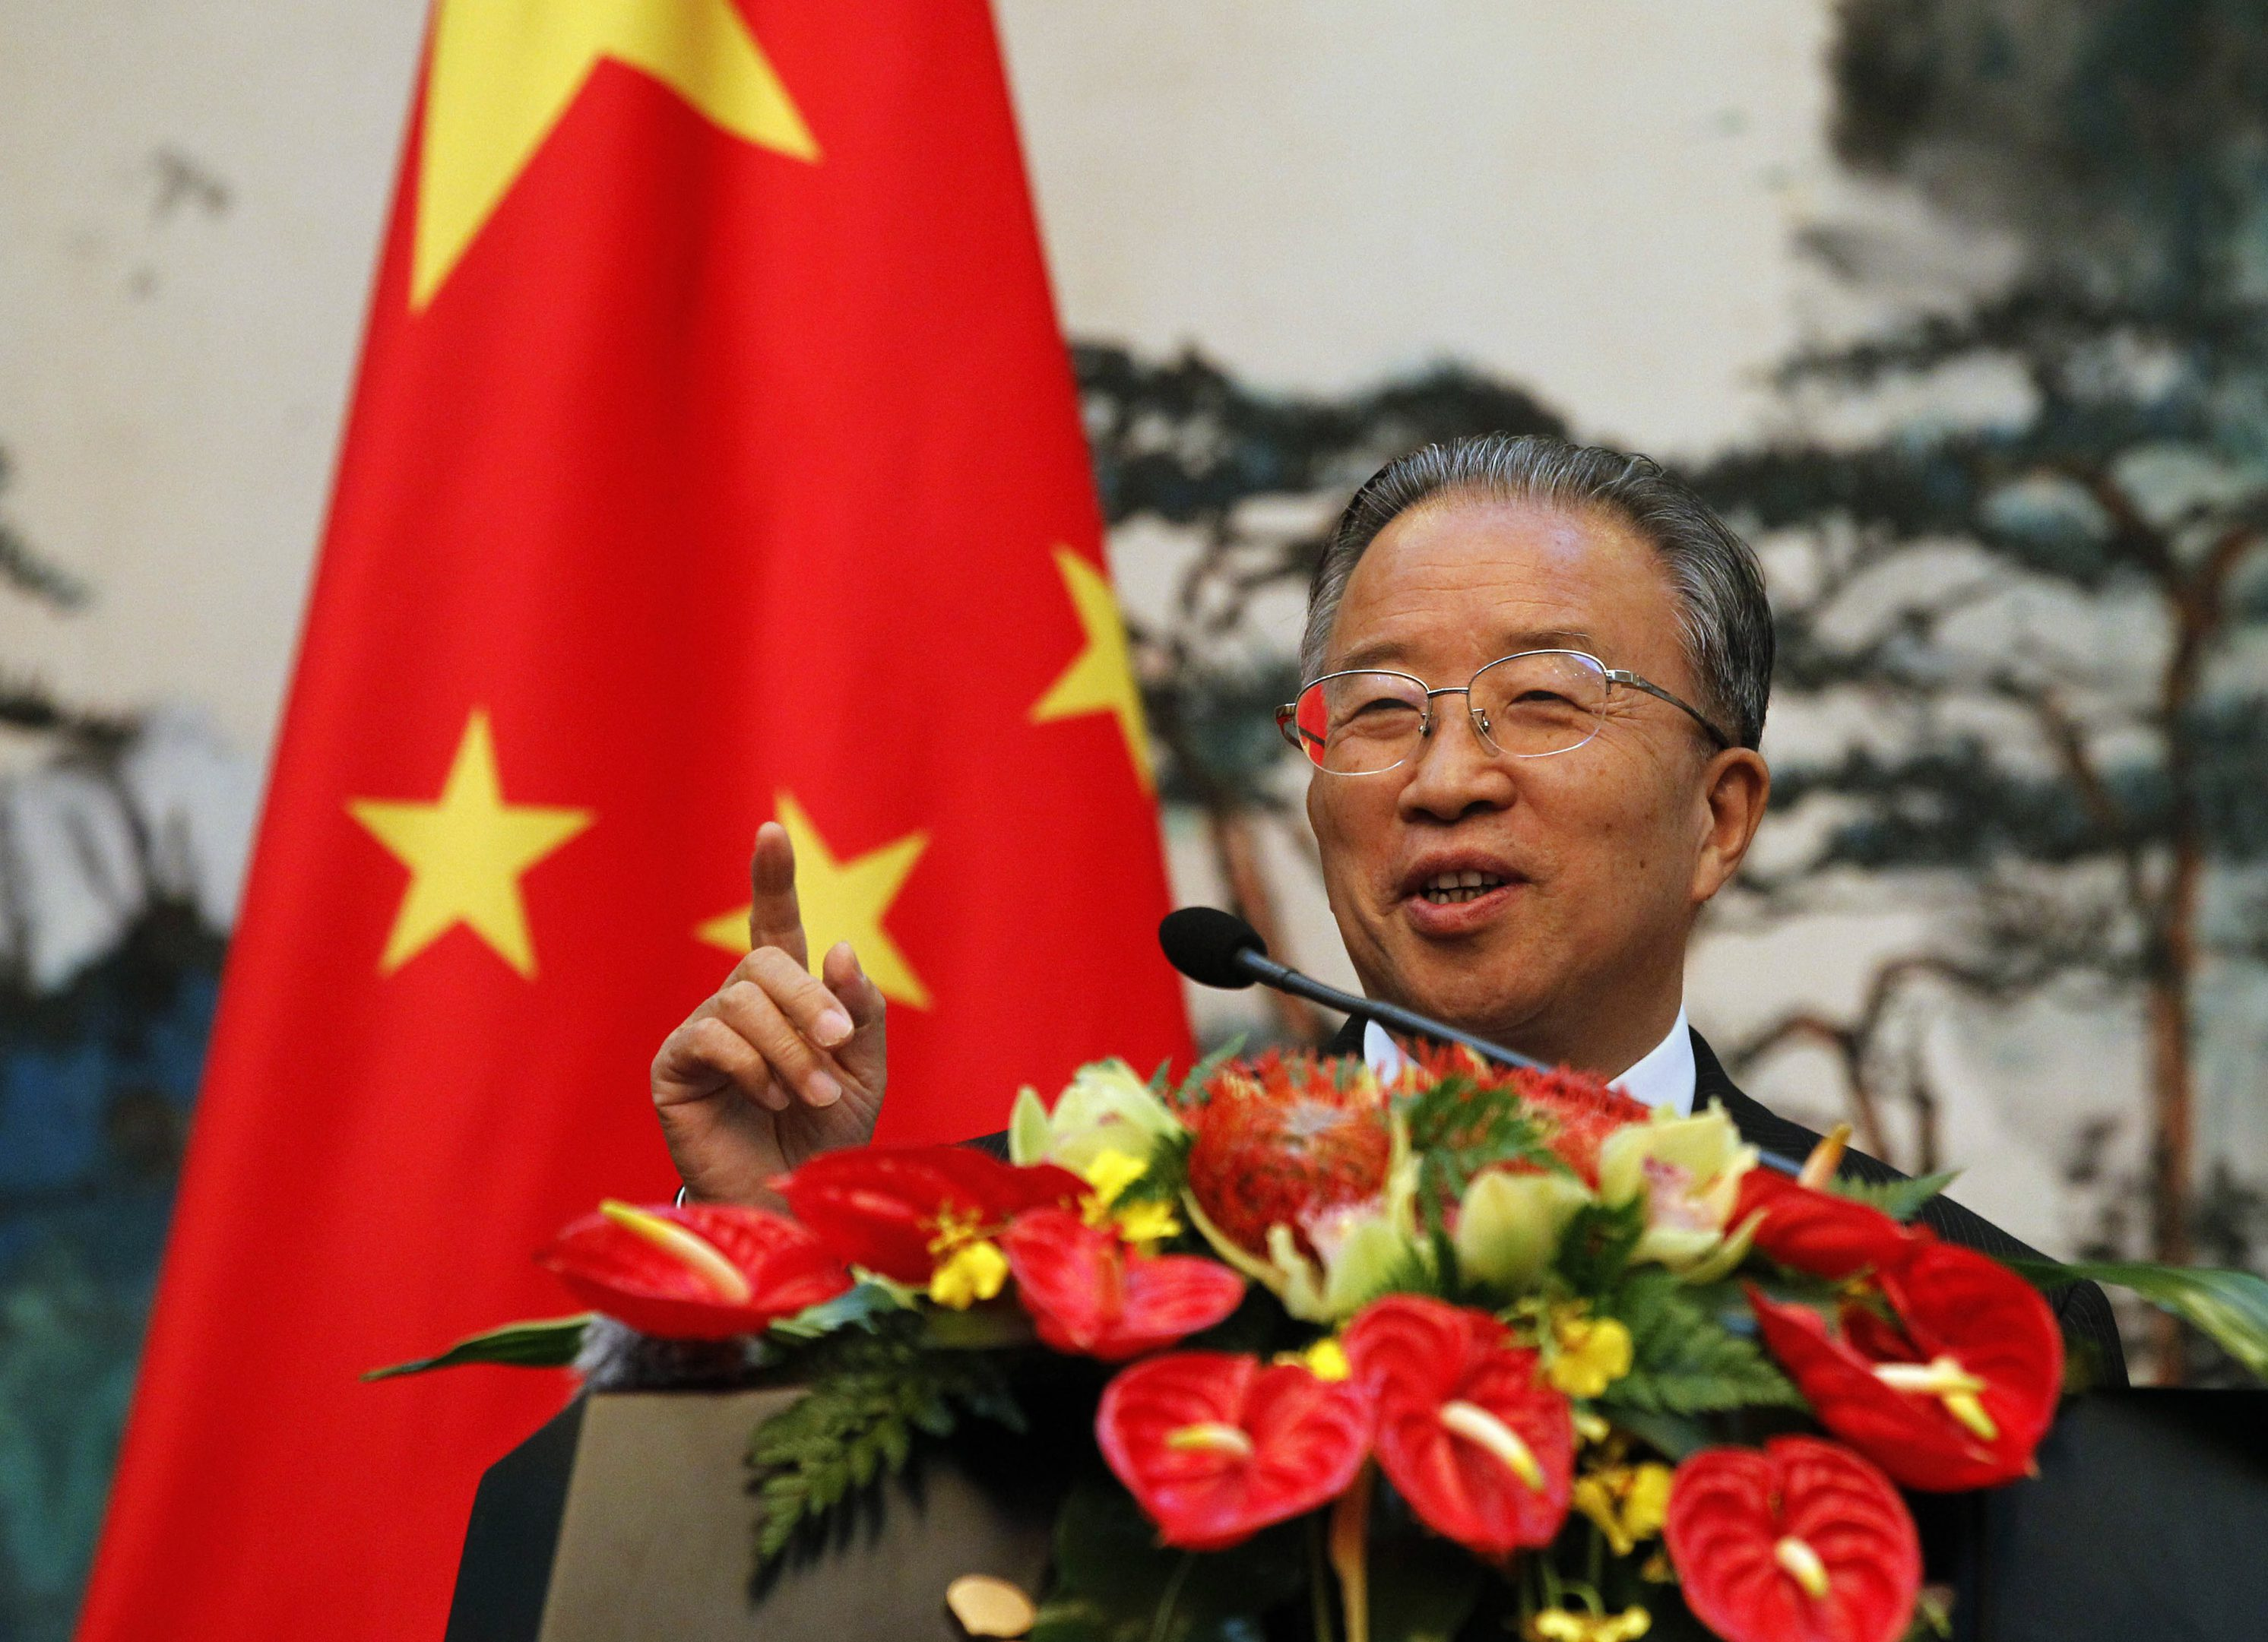 Chinese State Councillor Dai Bingguo speaks during a news briefing with European Union (EU) Foreign Policy Chief Catherine Ashton (not pictured) at the Diaoyutai State Guest House in Beijing, July 10, 2012. REUTERS/Ng Han Guan/Pool (CHINA - Tags: POLITICS) - RTR34SA6